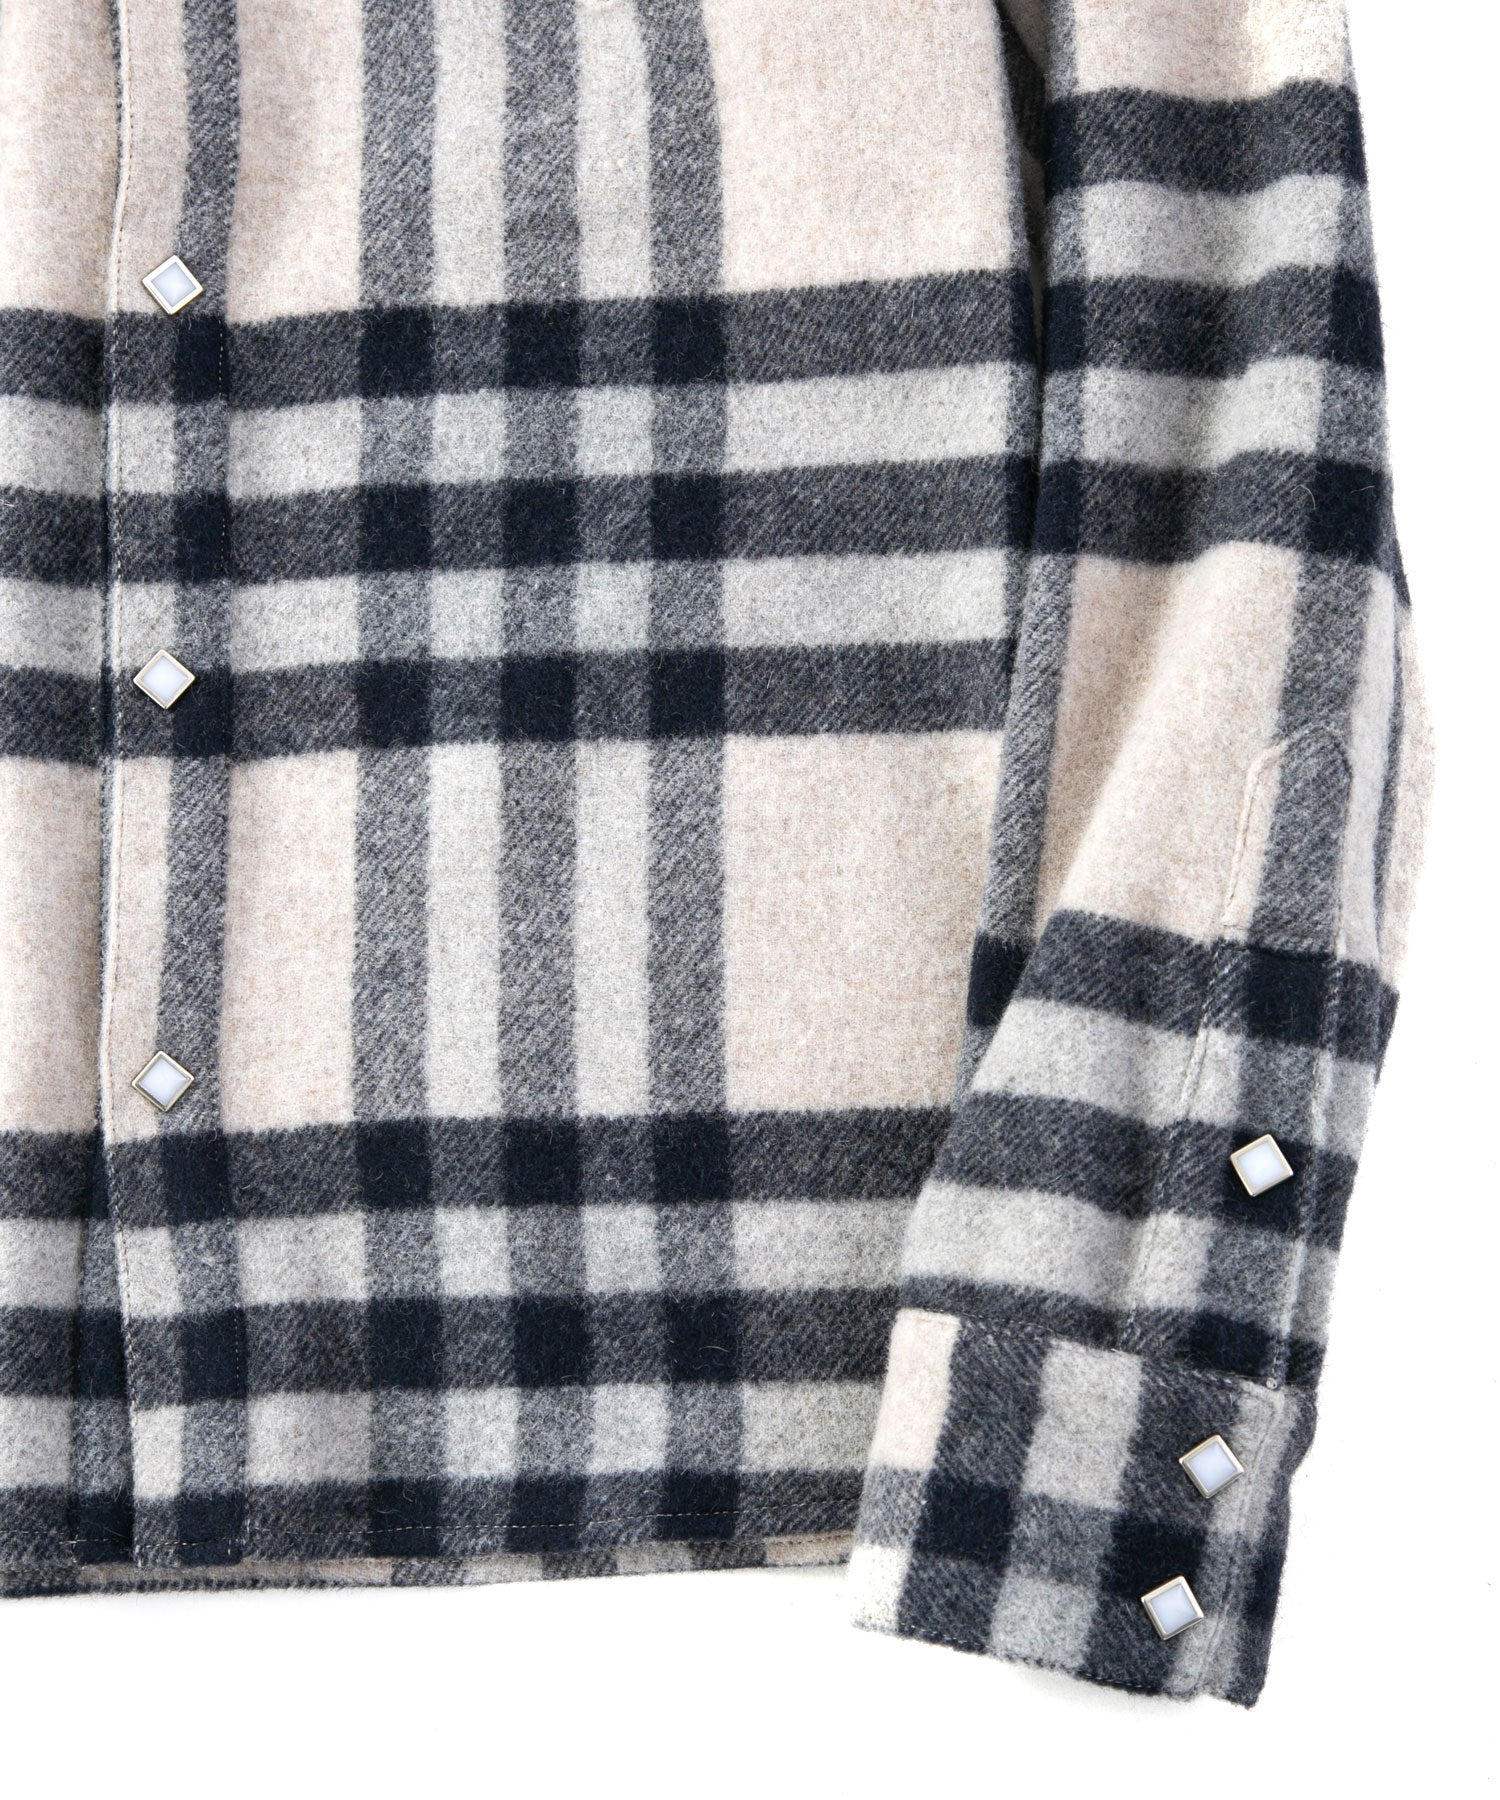 Load image into Gallery viewer, Angora Wool Shaggy Brushed Check Shirt / White